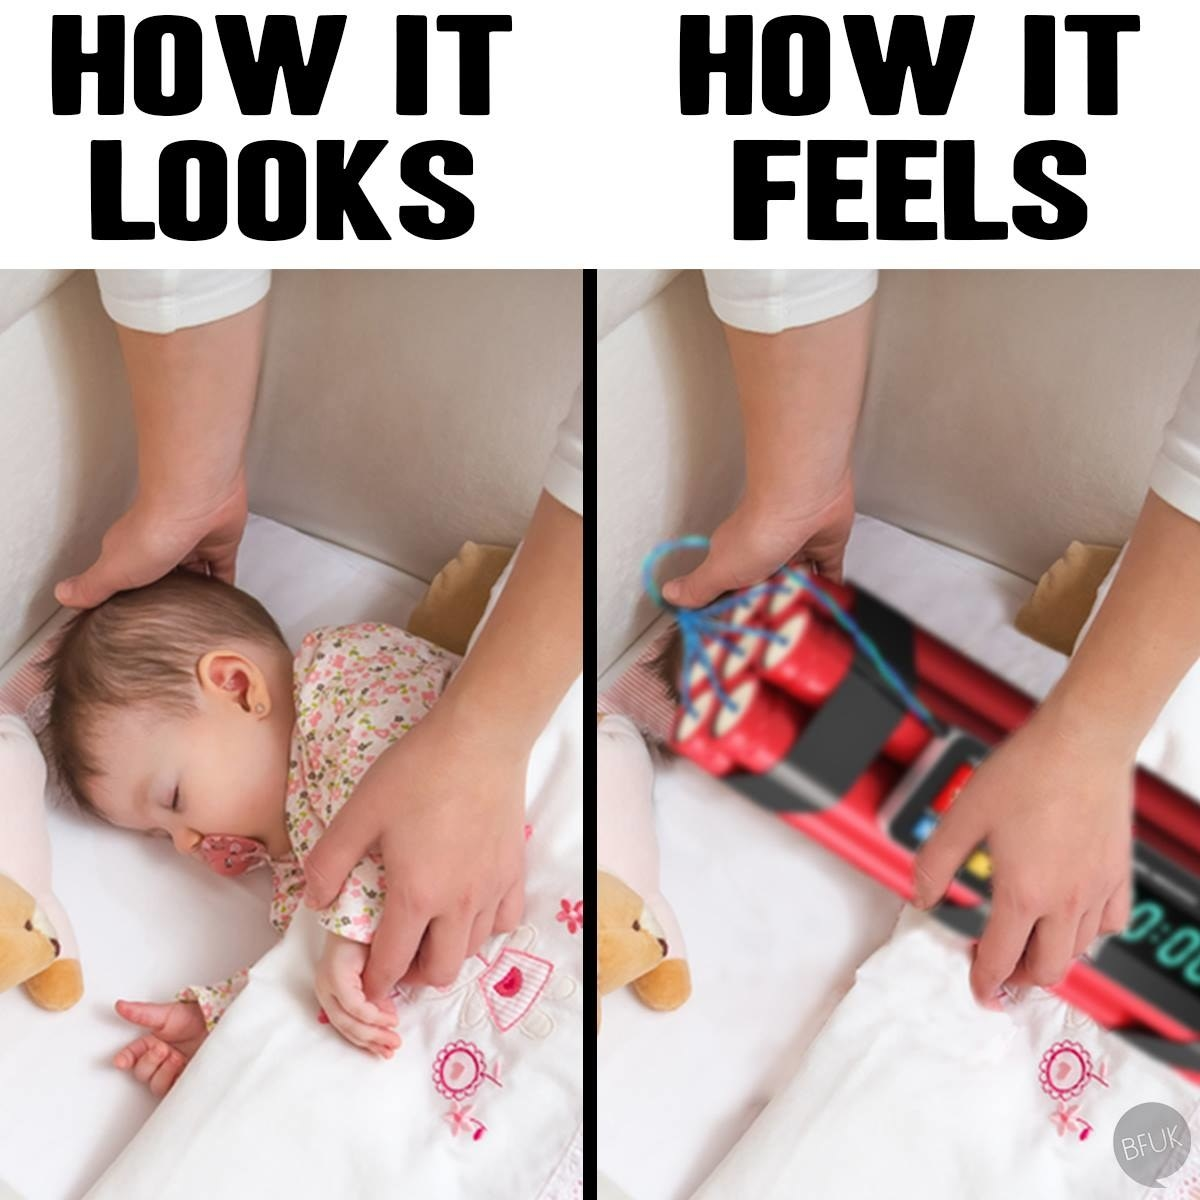 sub buzz 12012 1487889981 1?downsize=715 *&output format=auto&output quality=auto 100 parenting memes that will keep you laughing for hours,Funny Parenting Memes